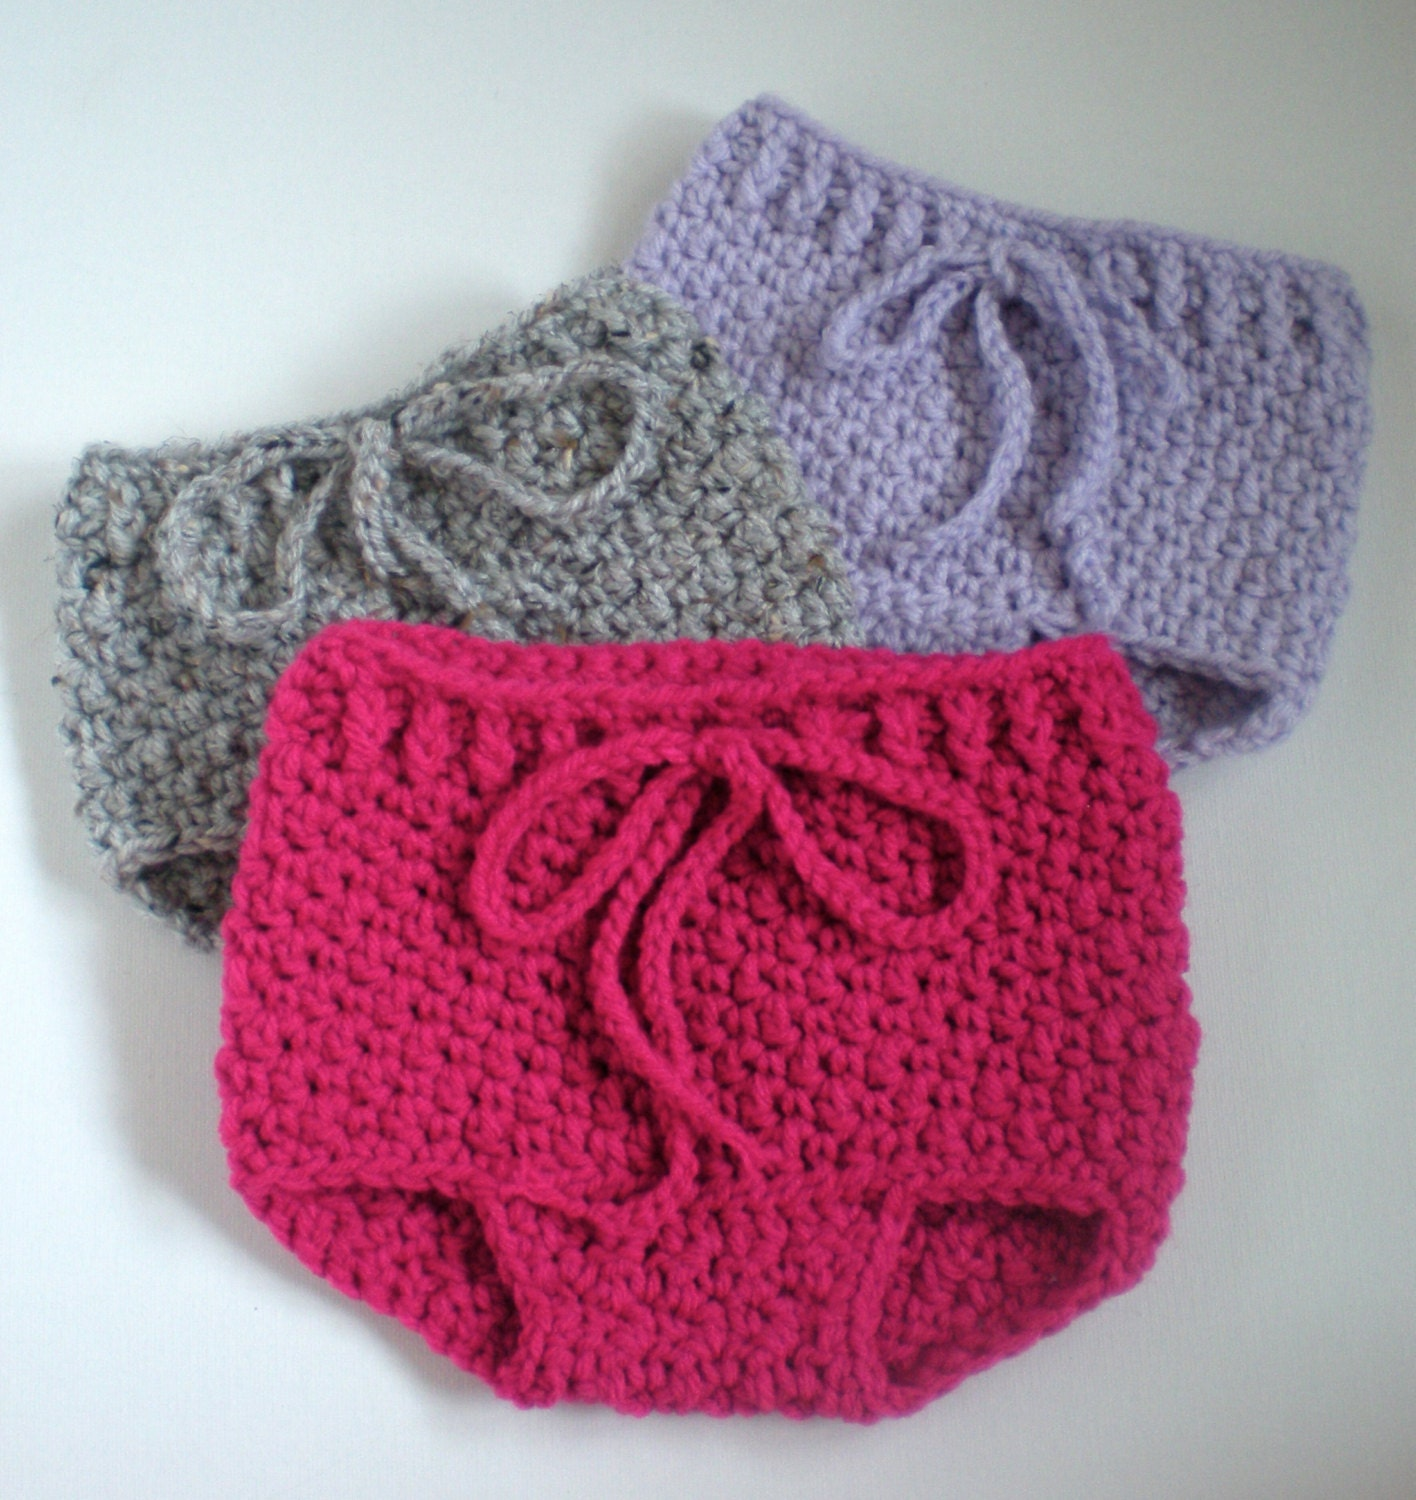 Crochet Pattern For A Baby Dress : PATTERN: Bloomers 3 SIZES baby girl diaper cover by swellamy